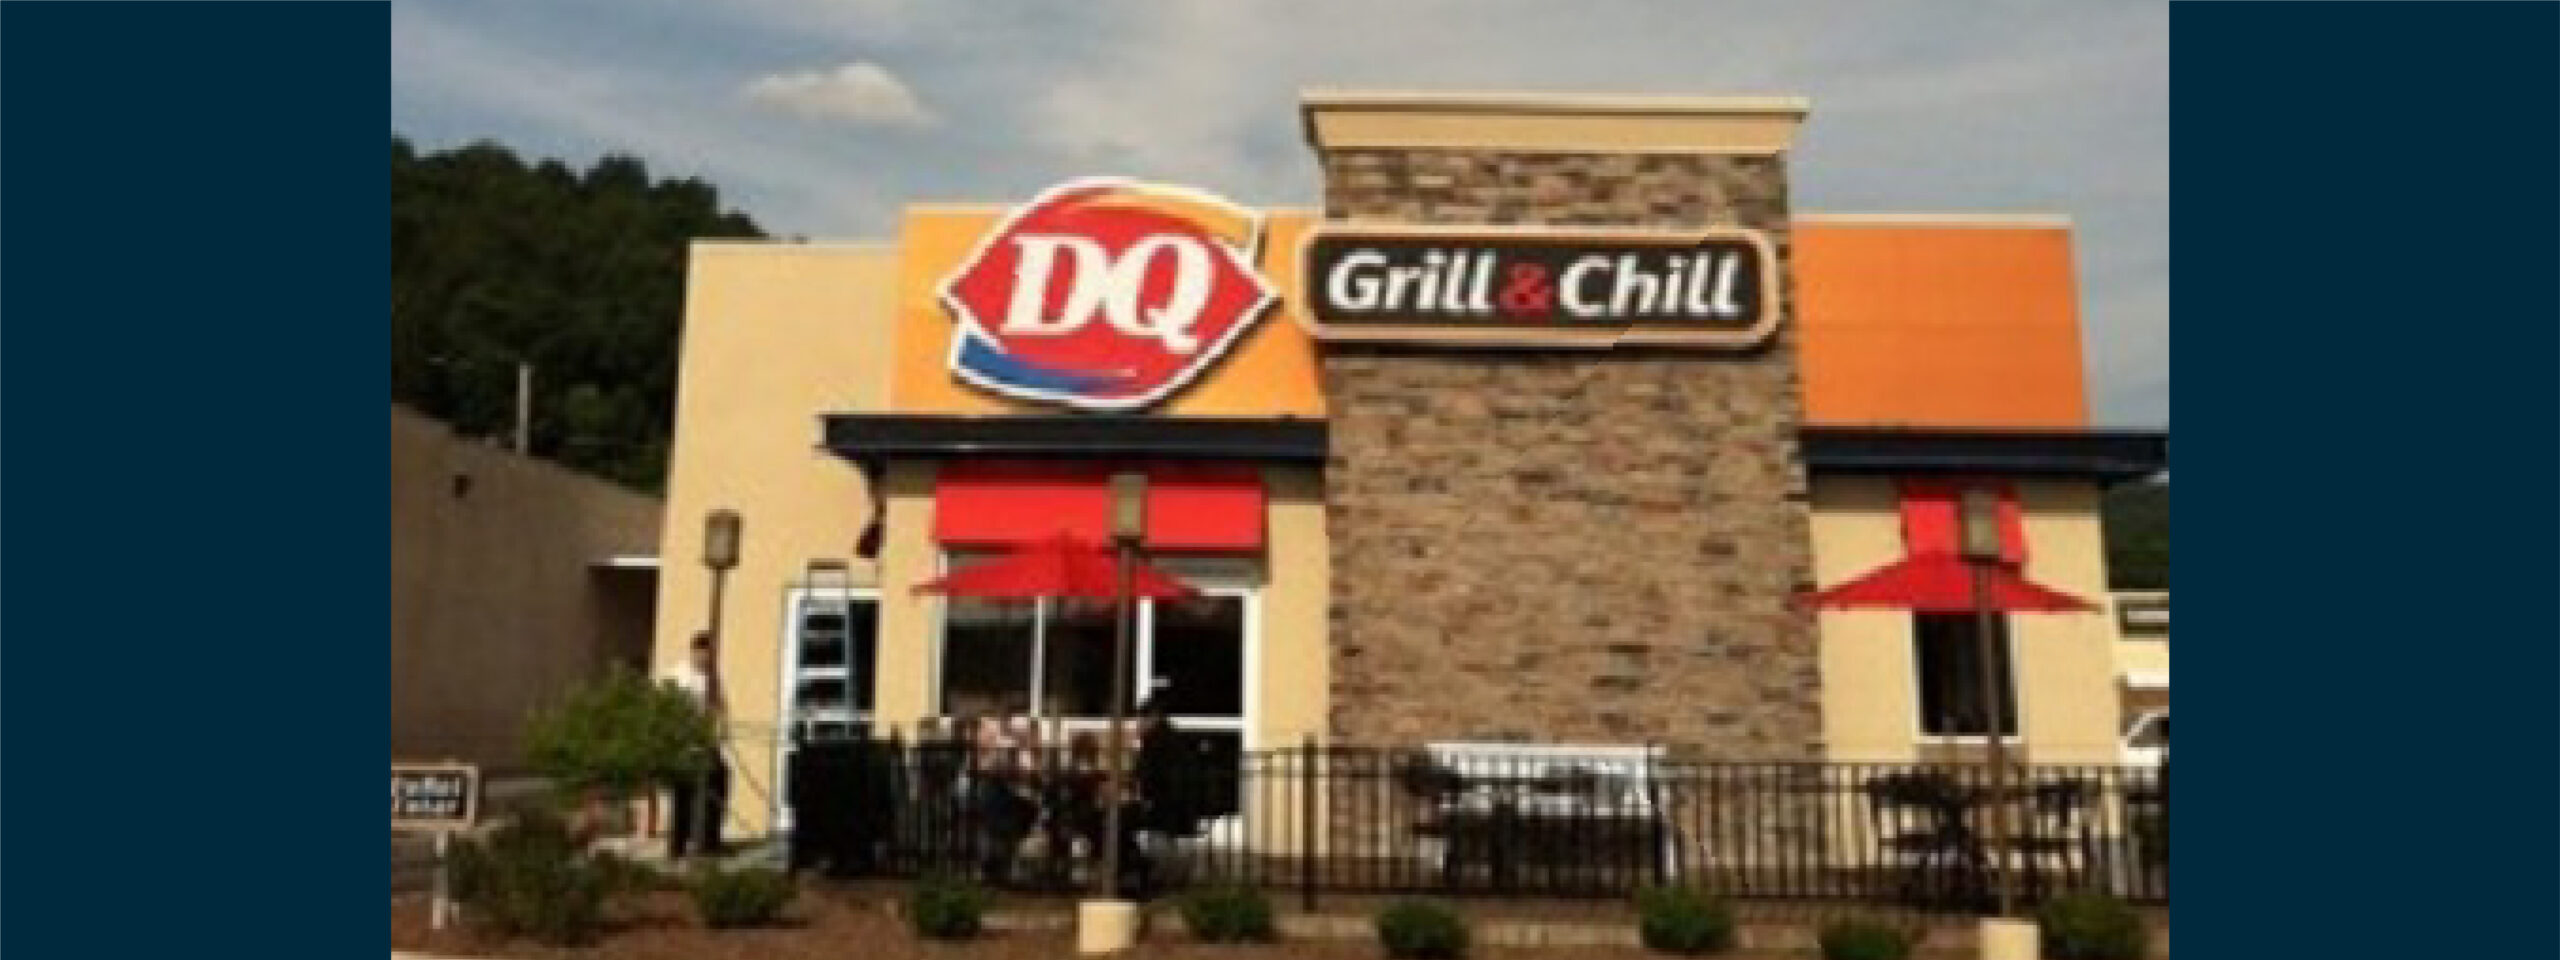 Middlesboro, KY Fourteen Foods DQ Restaurant